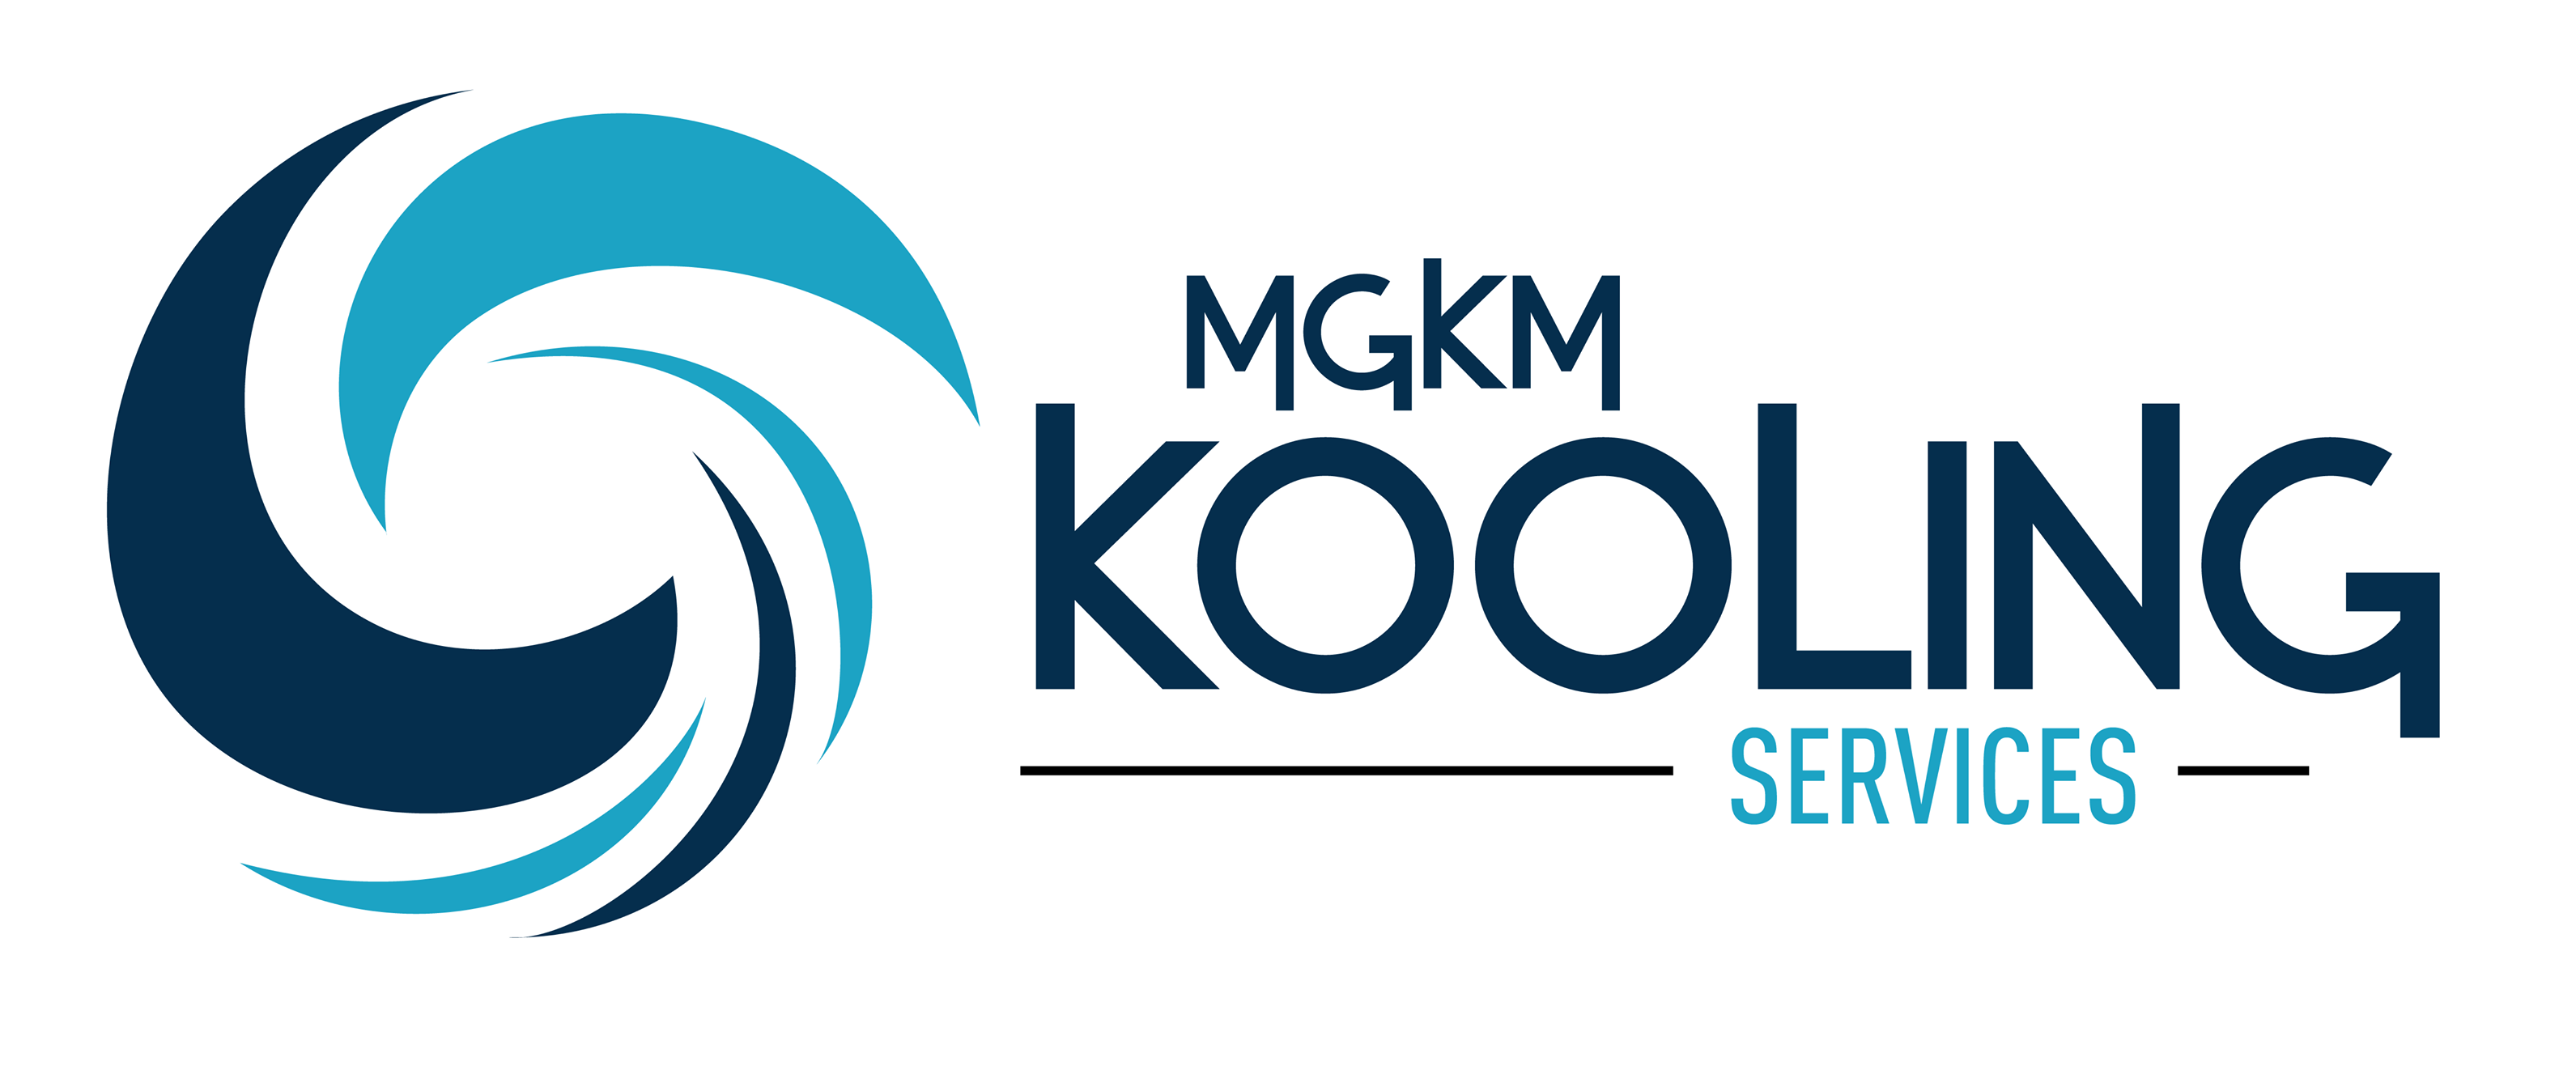 MGKM Kooling Services